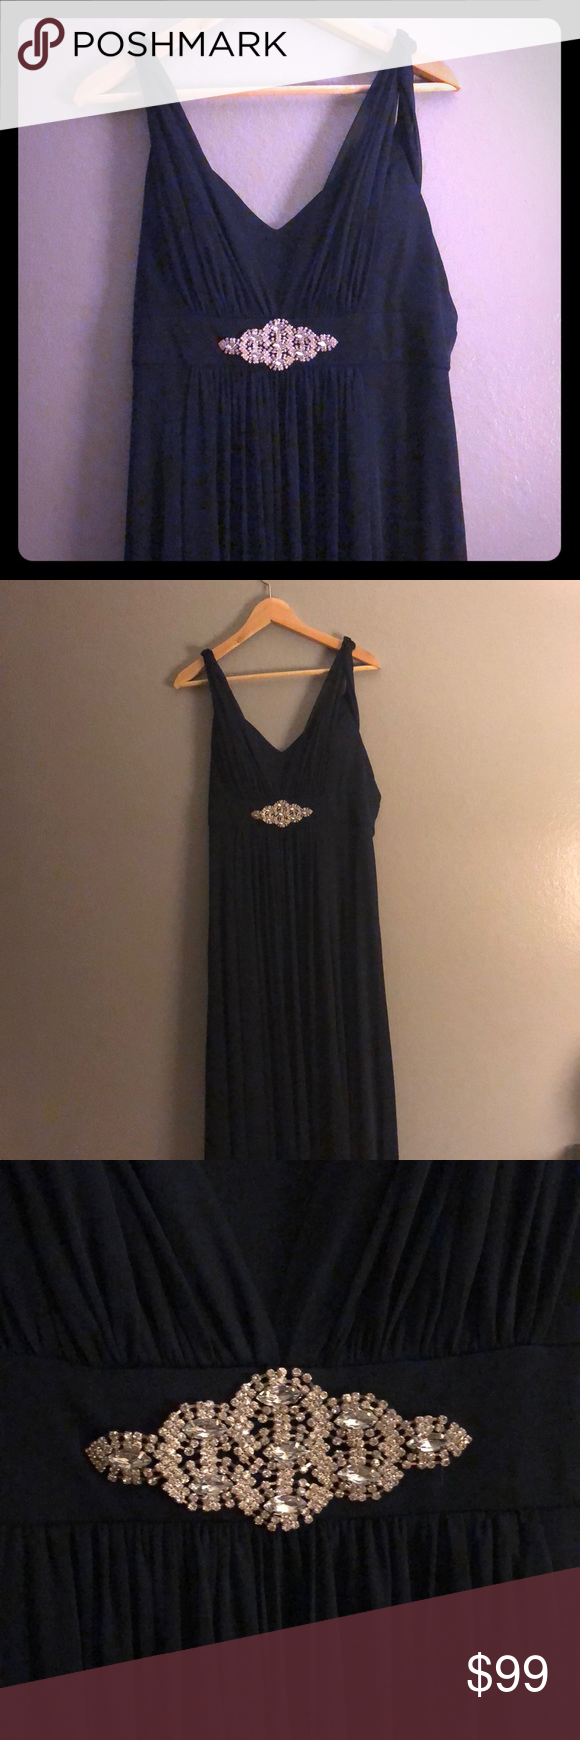 Navy blue prom dressformal gown like new condition was